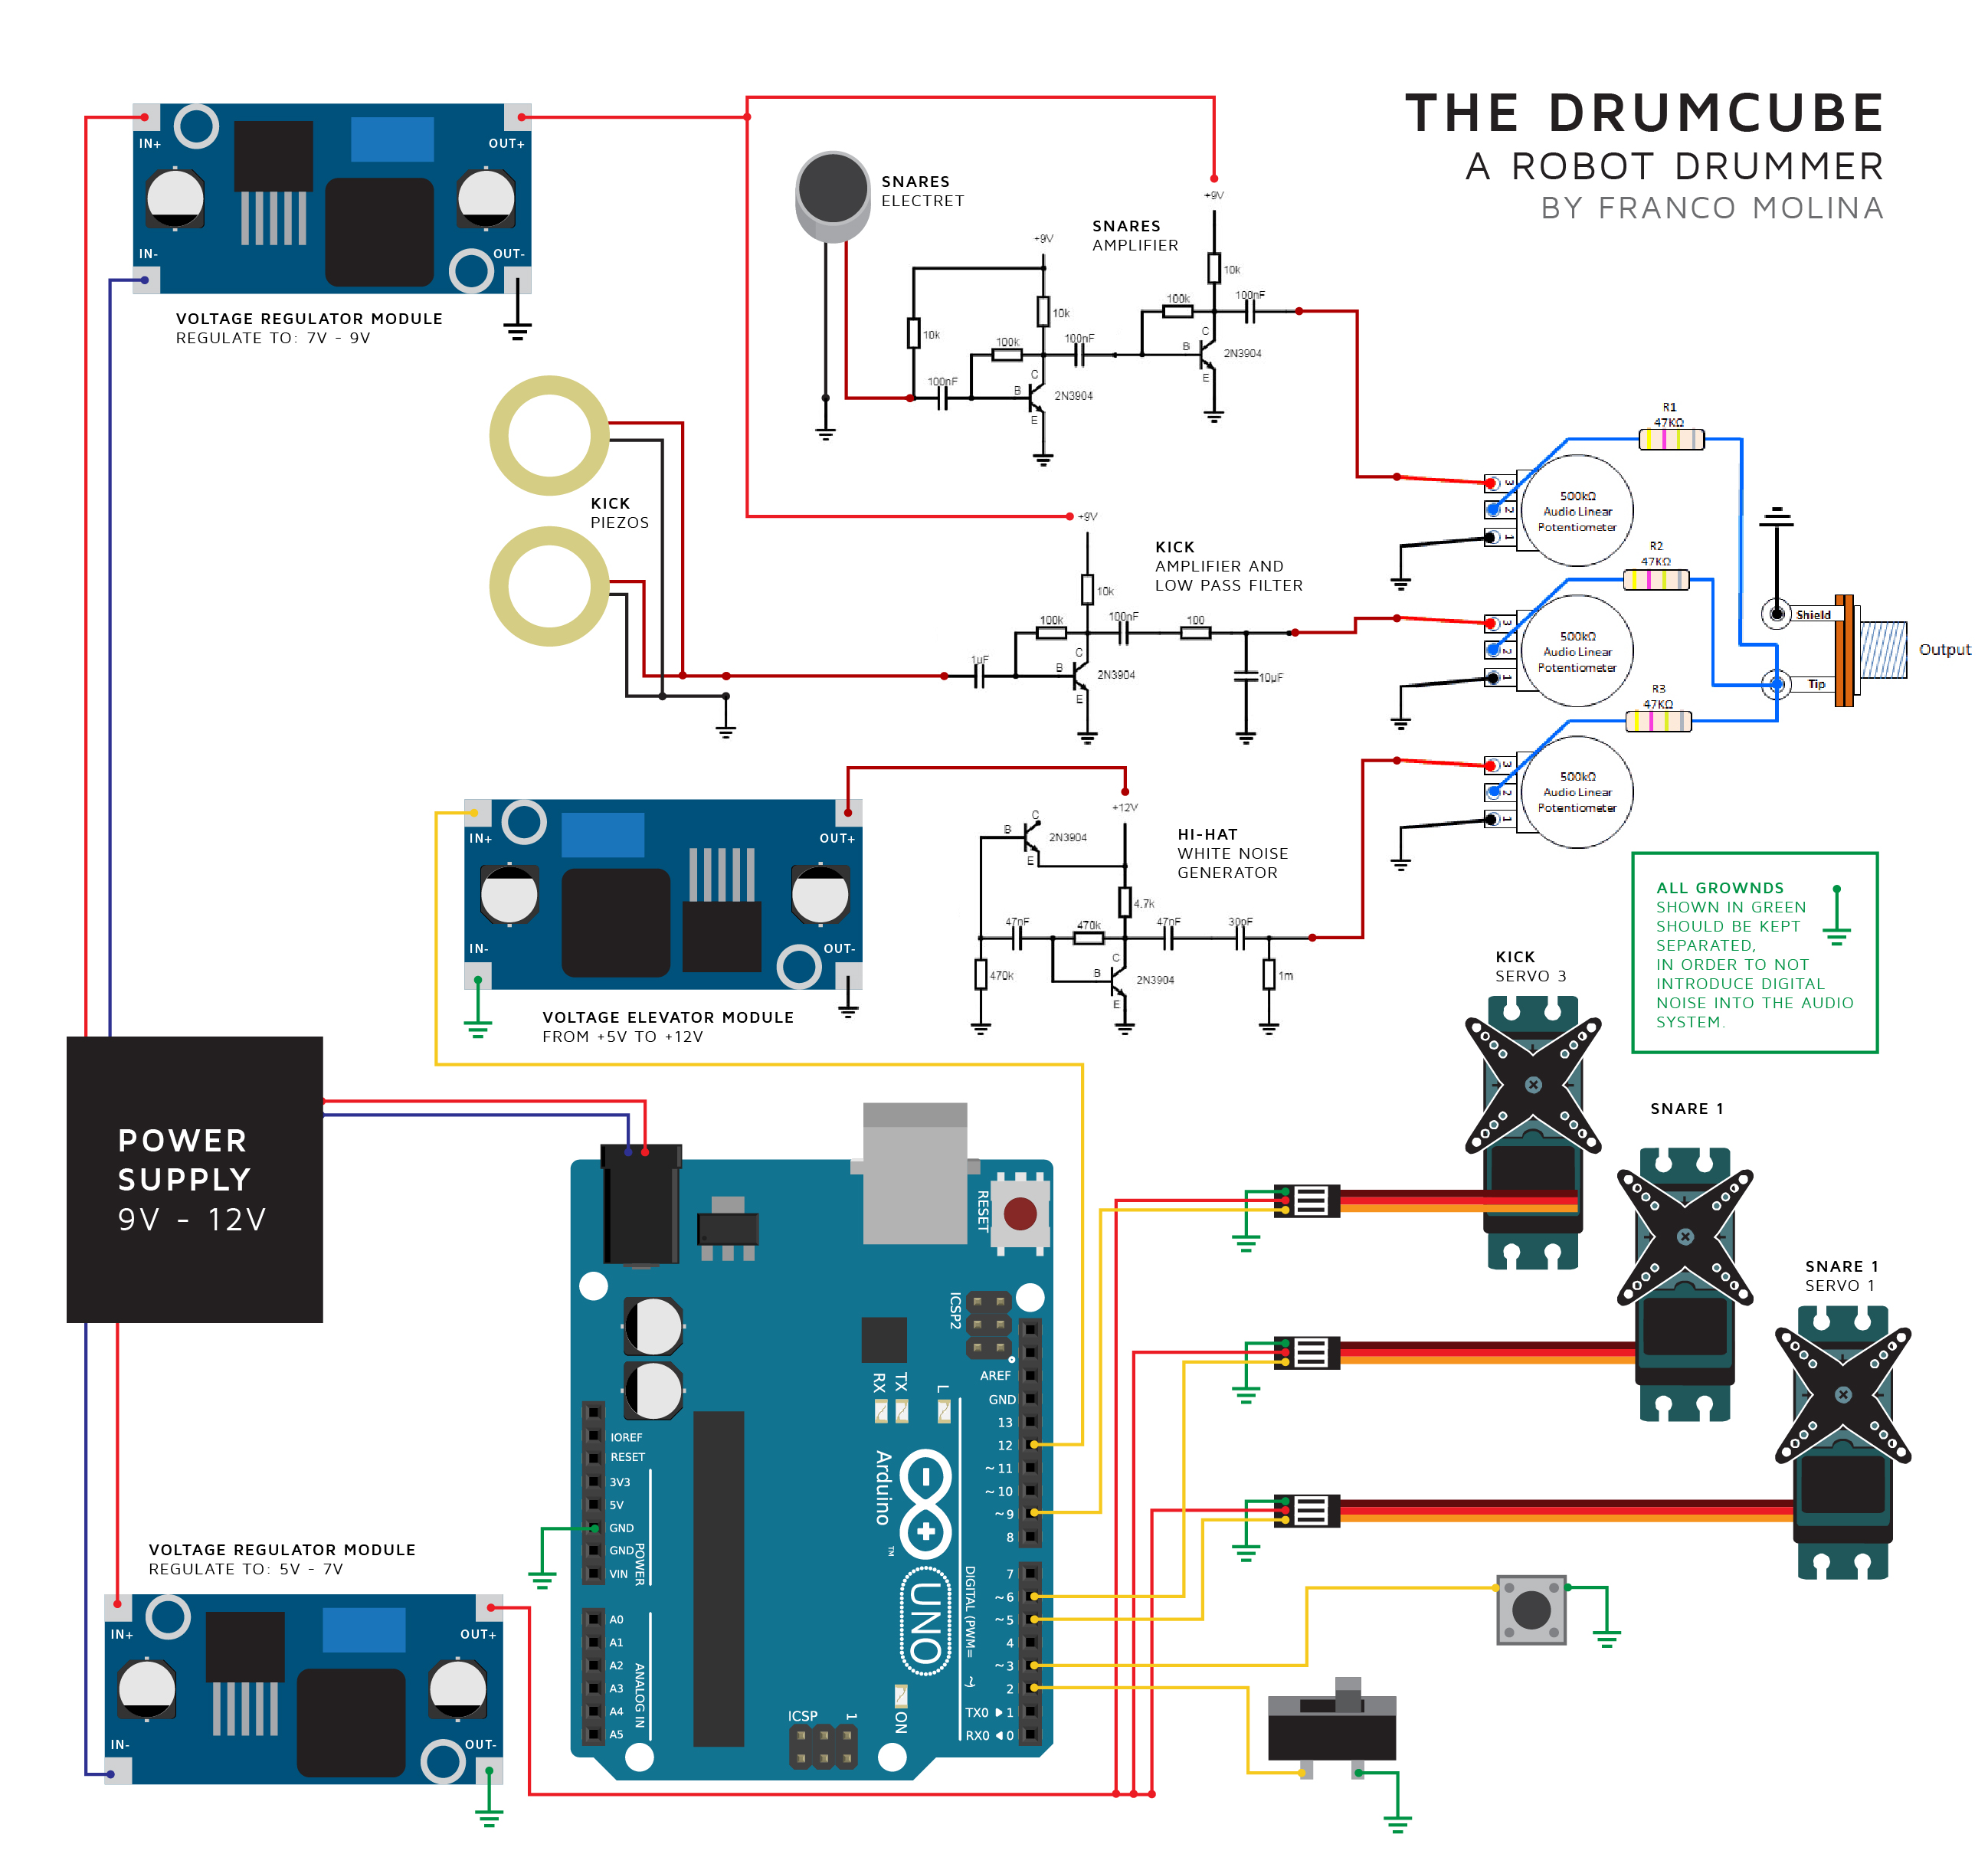 small resolution of power the electret mic through arduino uno as shown in circuit diagram wiring diagram blog